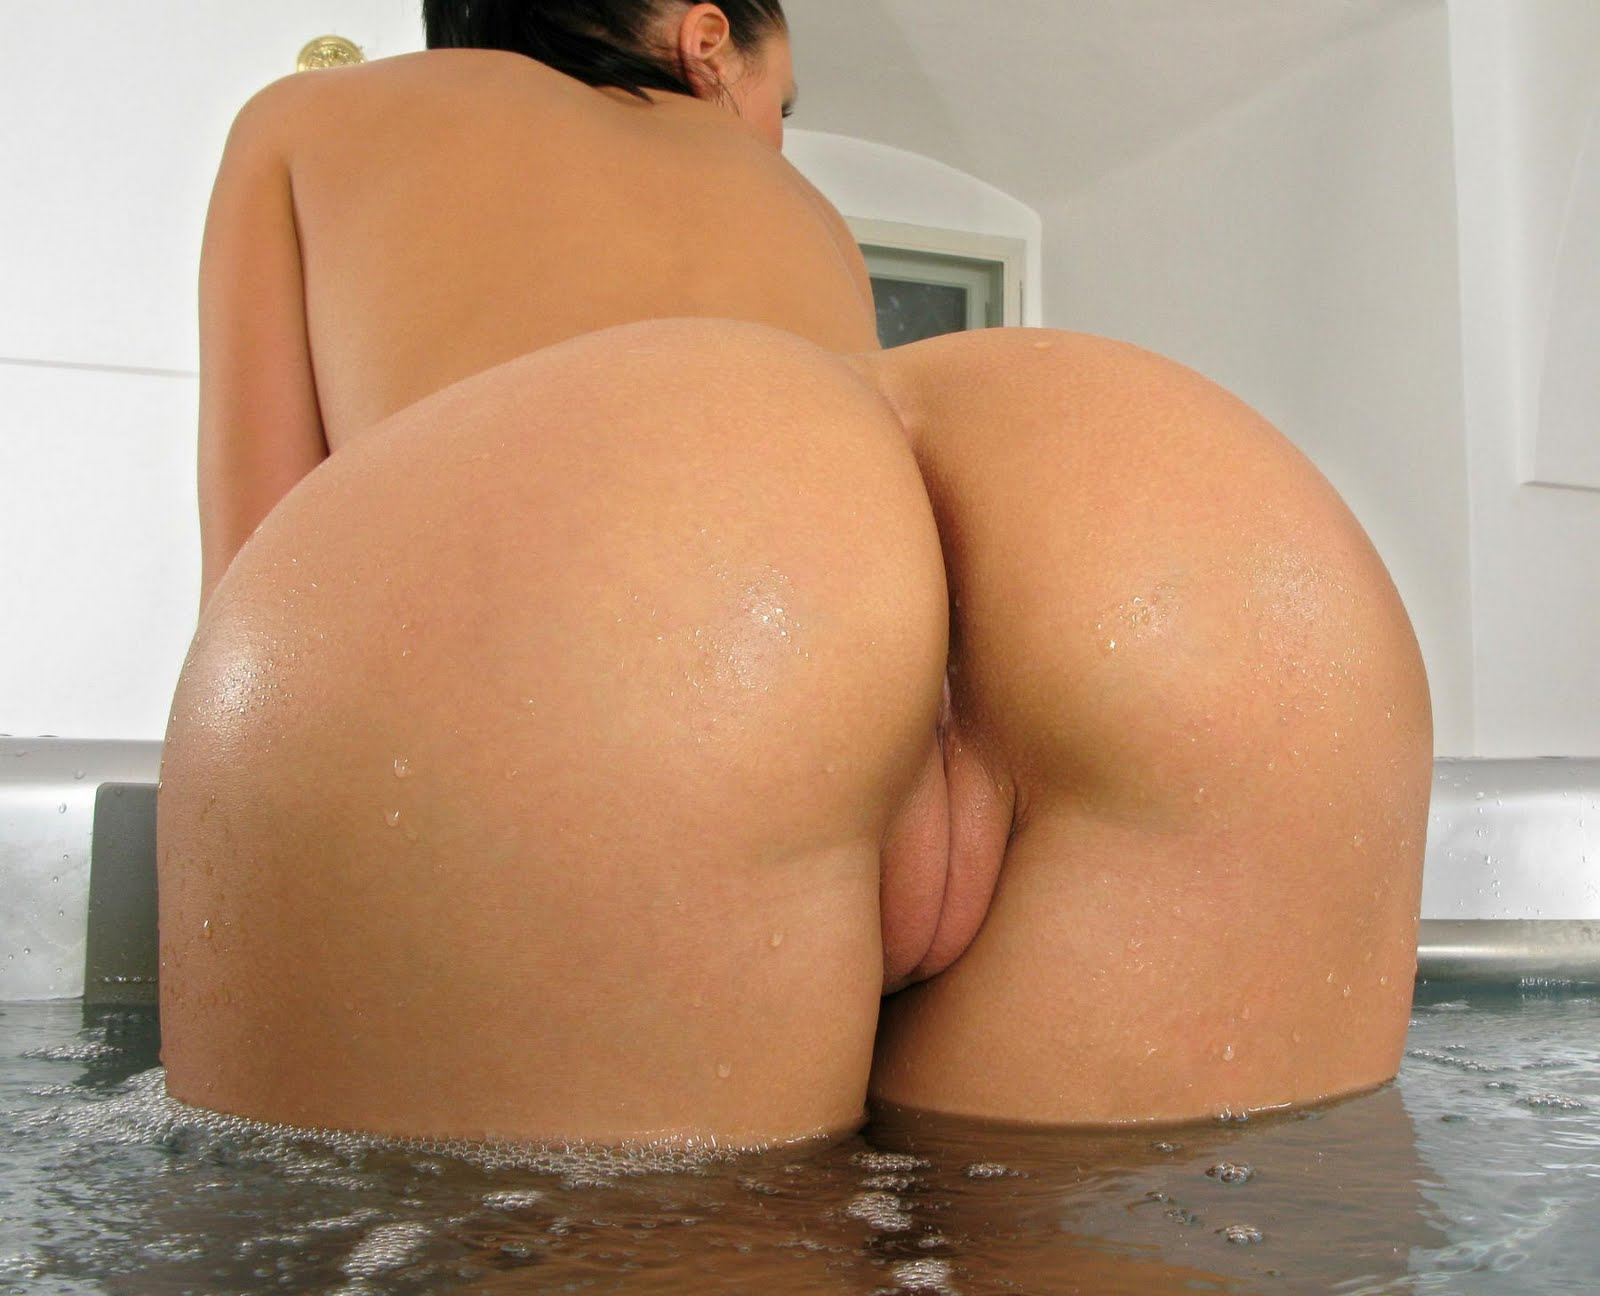 Big Wet Ass Video